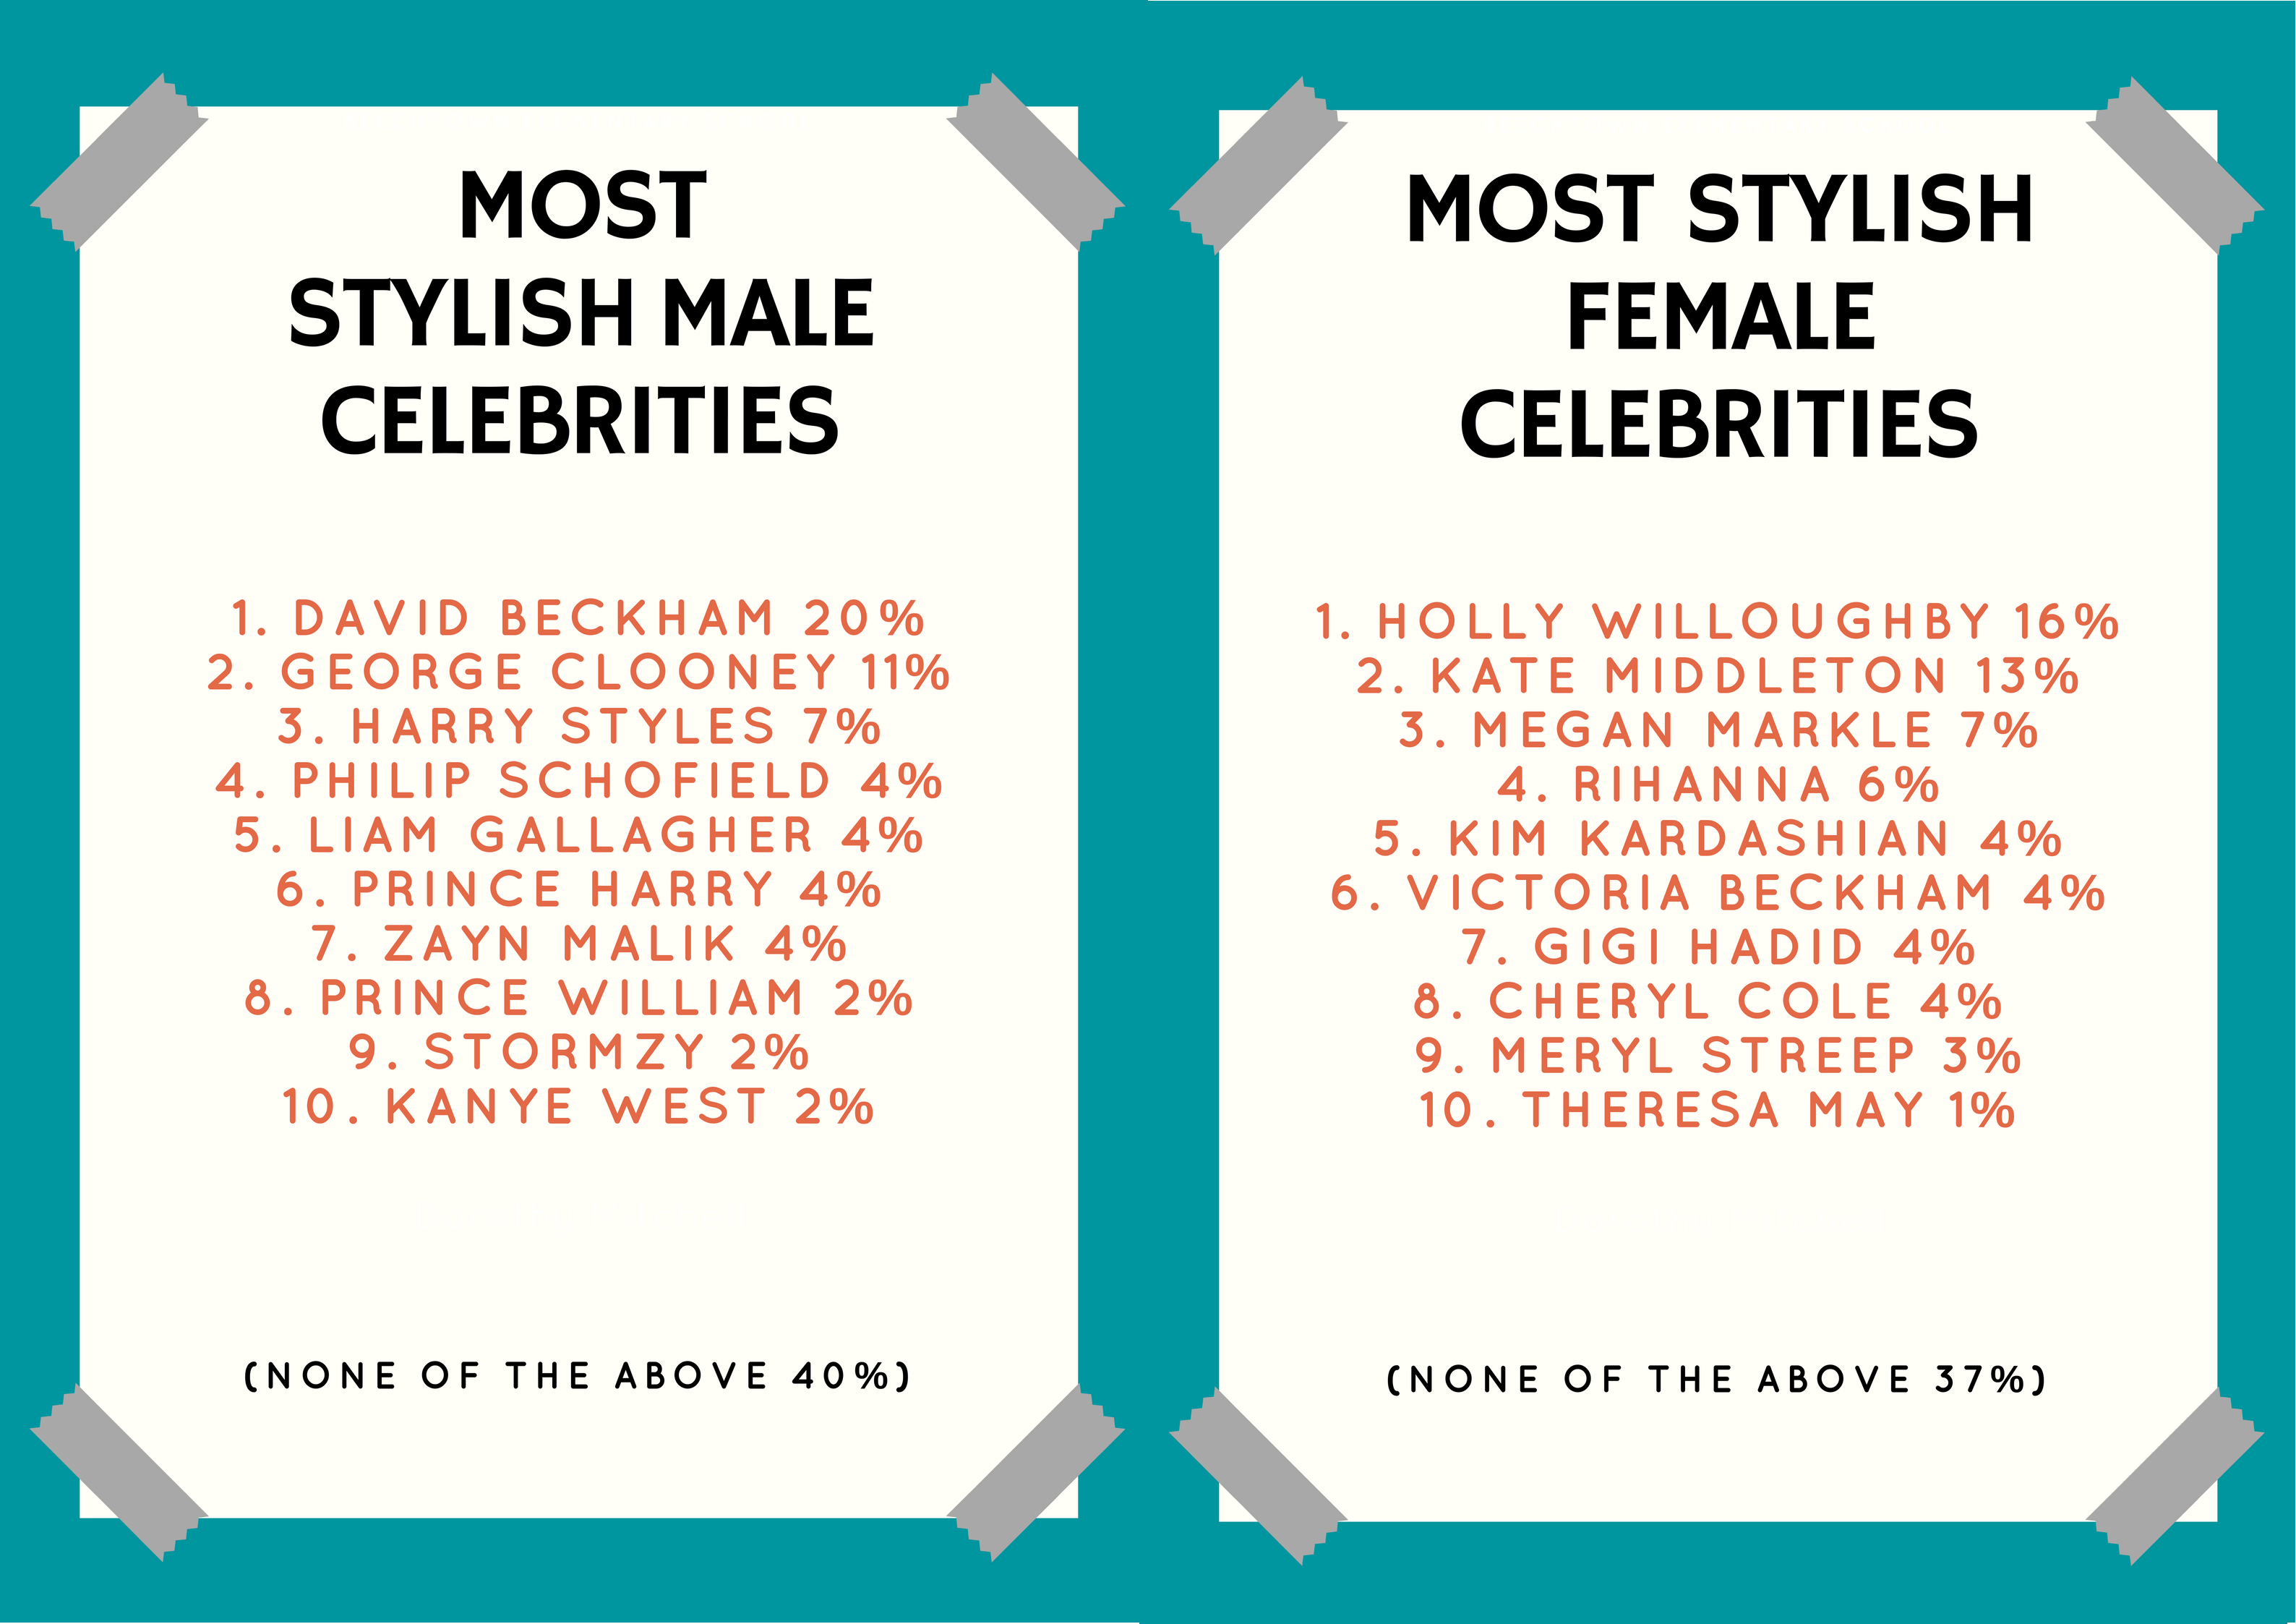 MOST FASHIONABLE CELEBRITIES